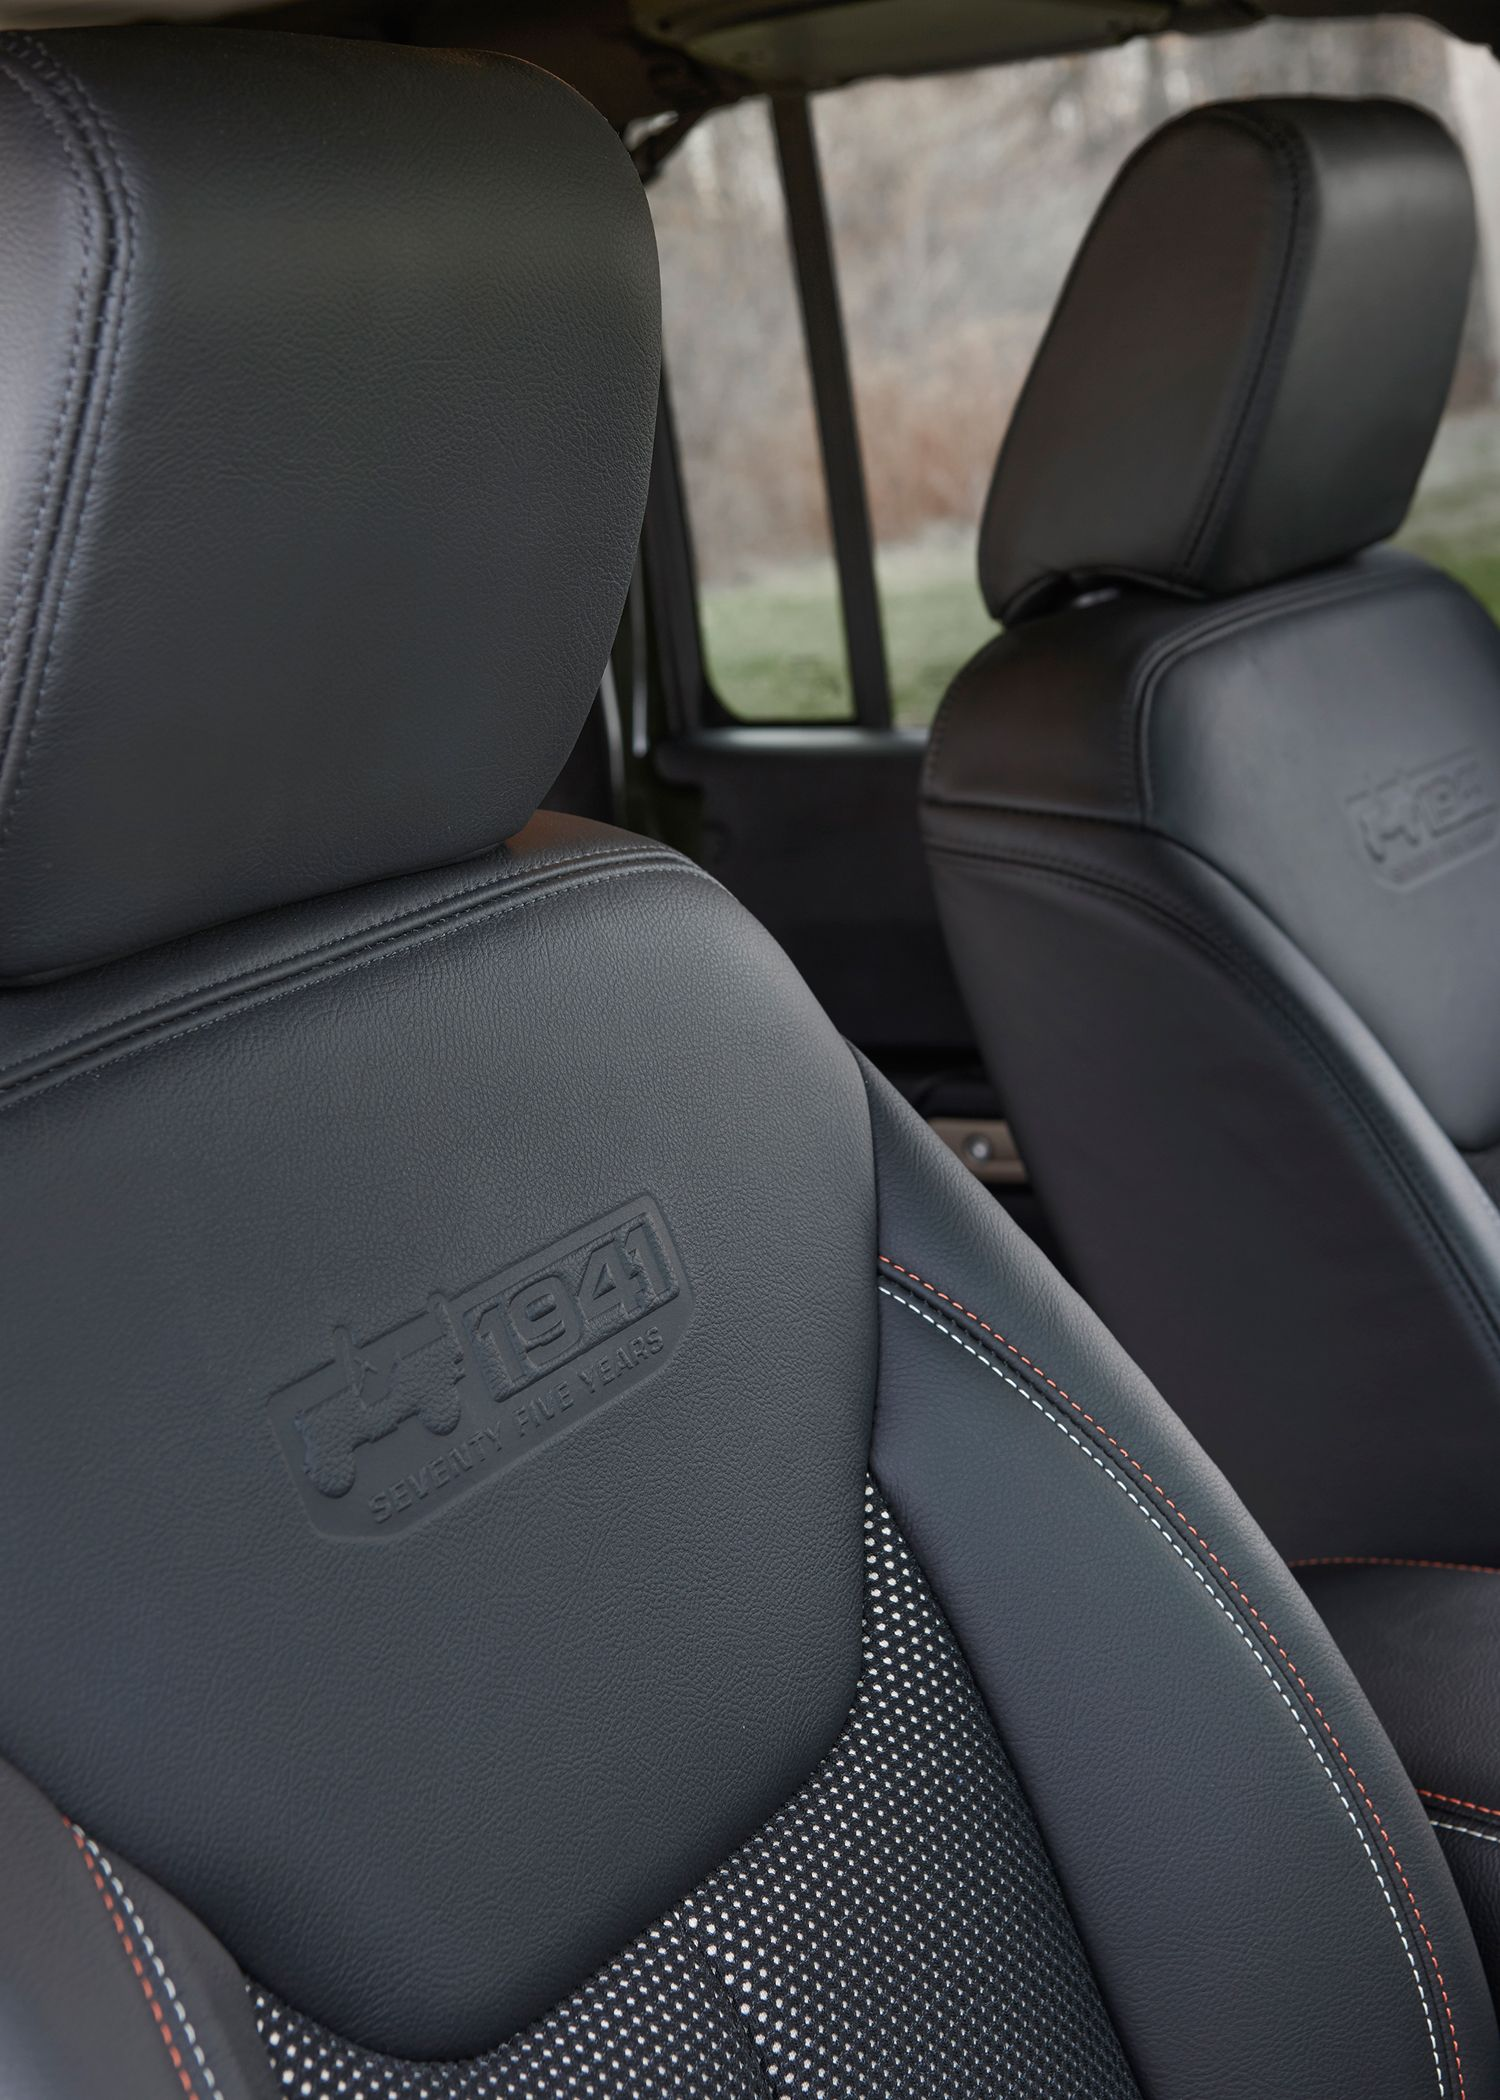 2016 Jeep Wrangler Unlimited 75th Anniversary Edition Interior Seats 02